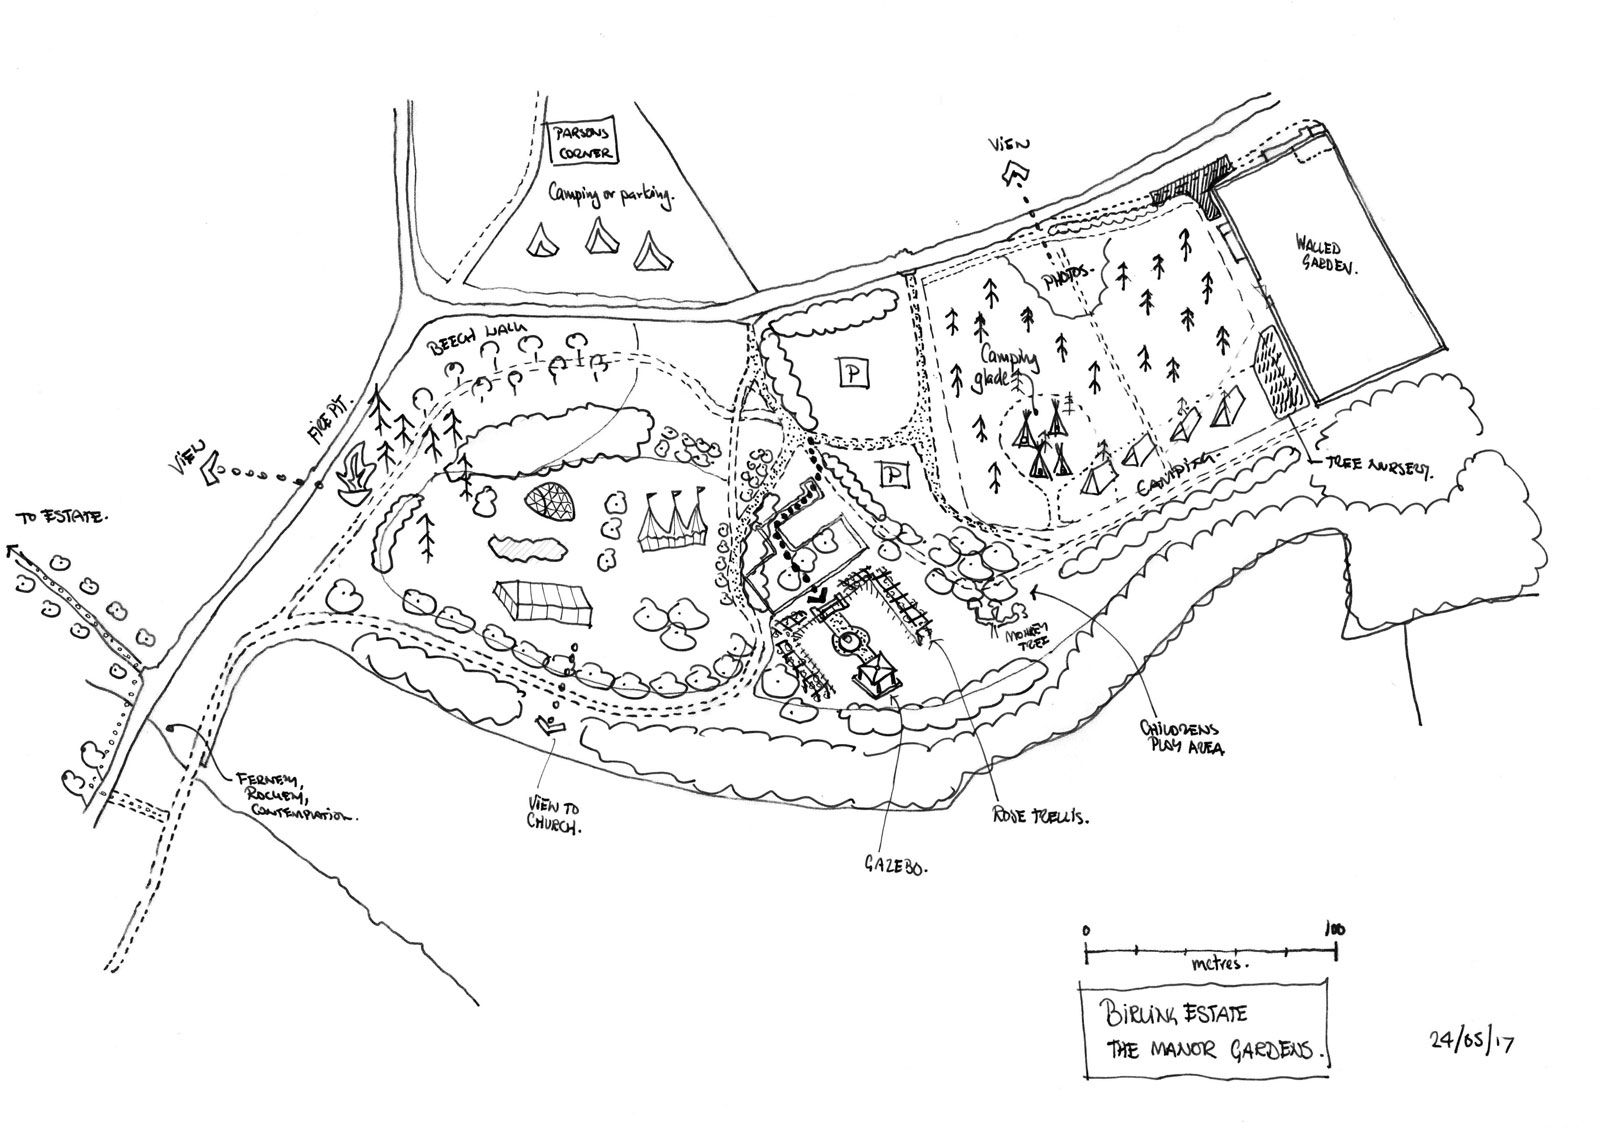 The Manor Gardens Layout